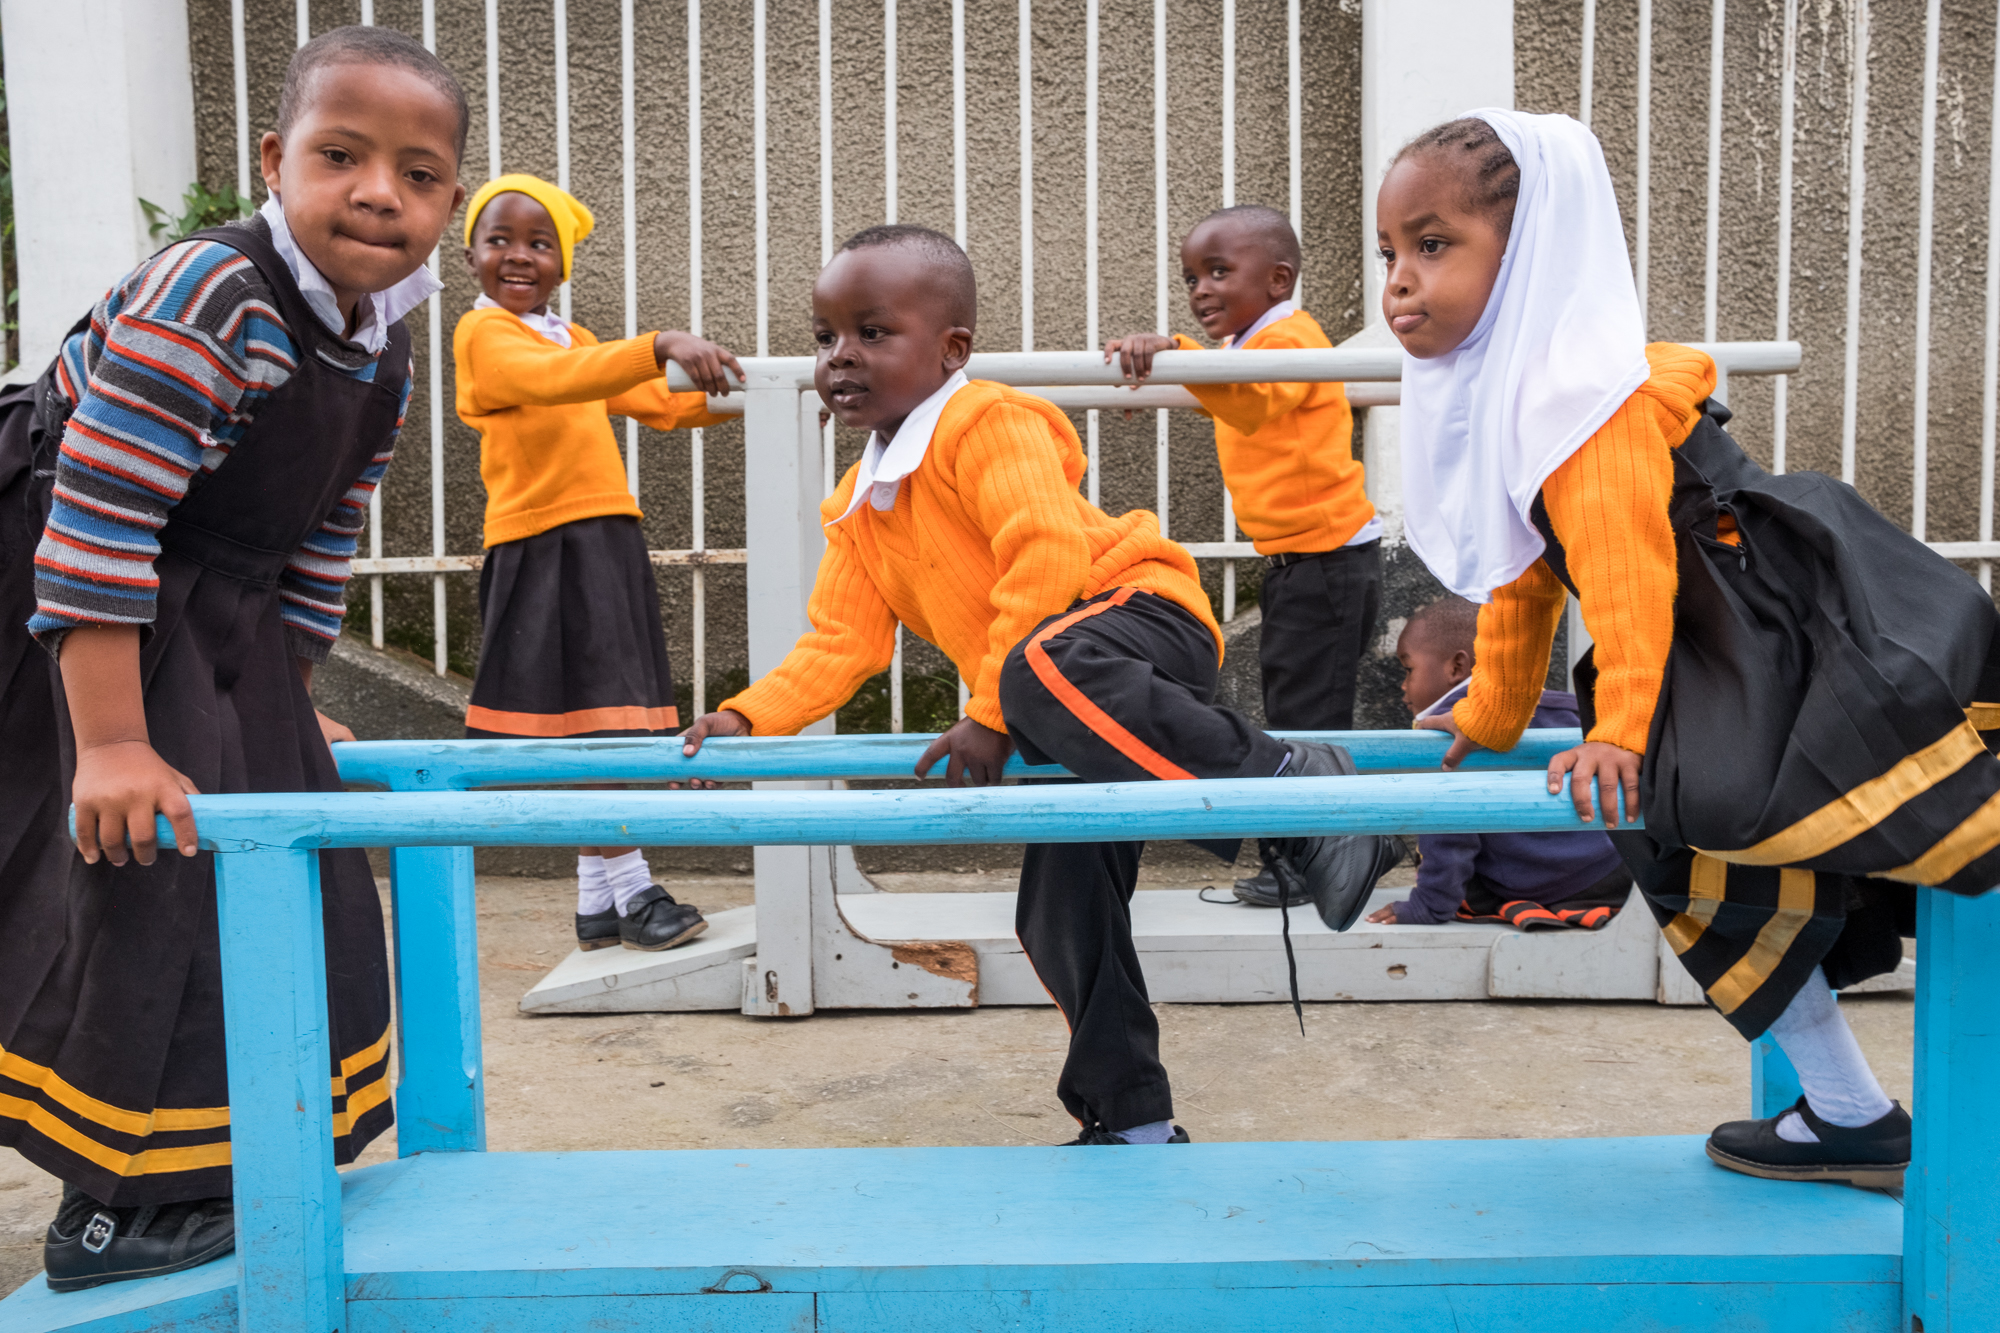 Students at Child Support Tanzania interact and play on assisted walking equipment.